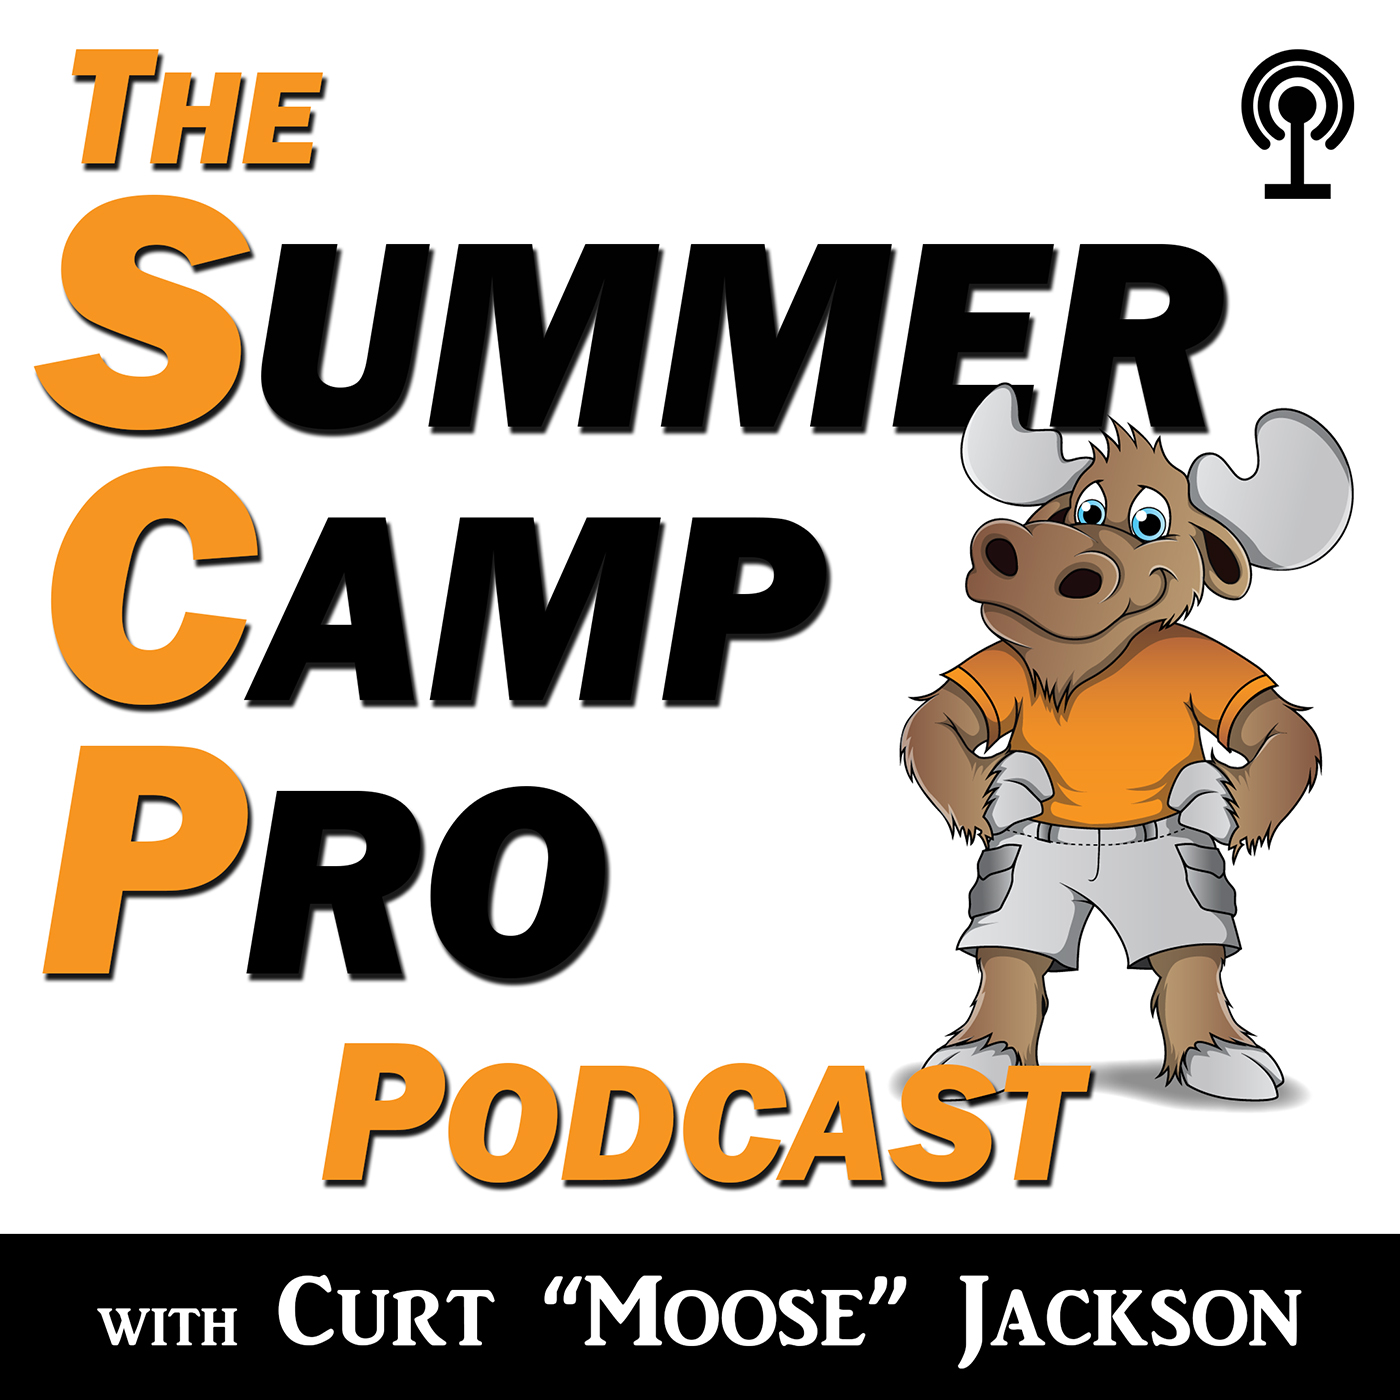 Summer Camp Pro Podcast